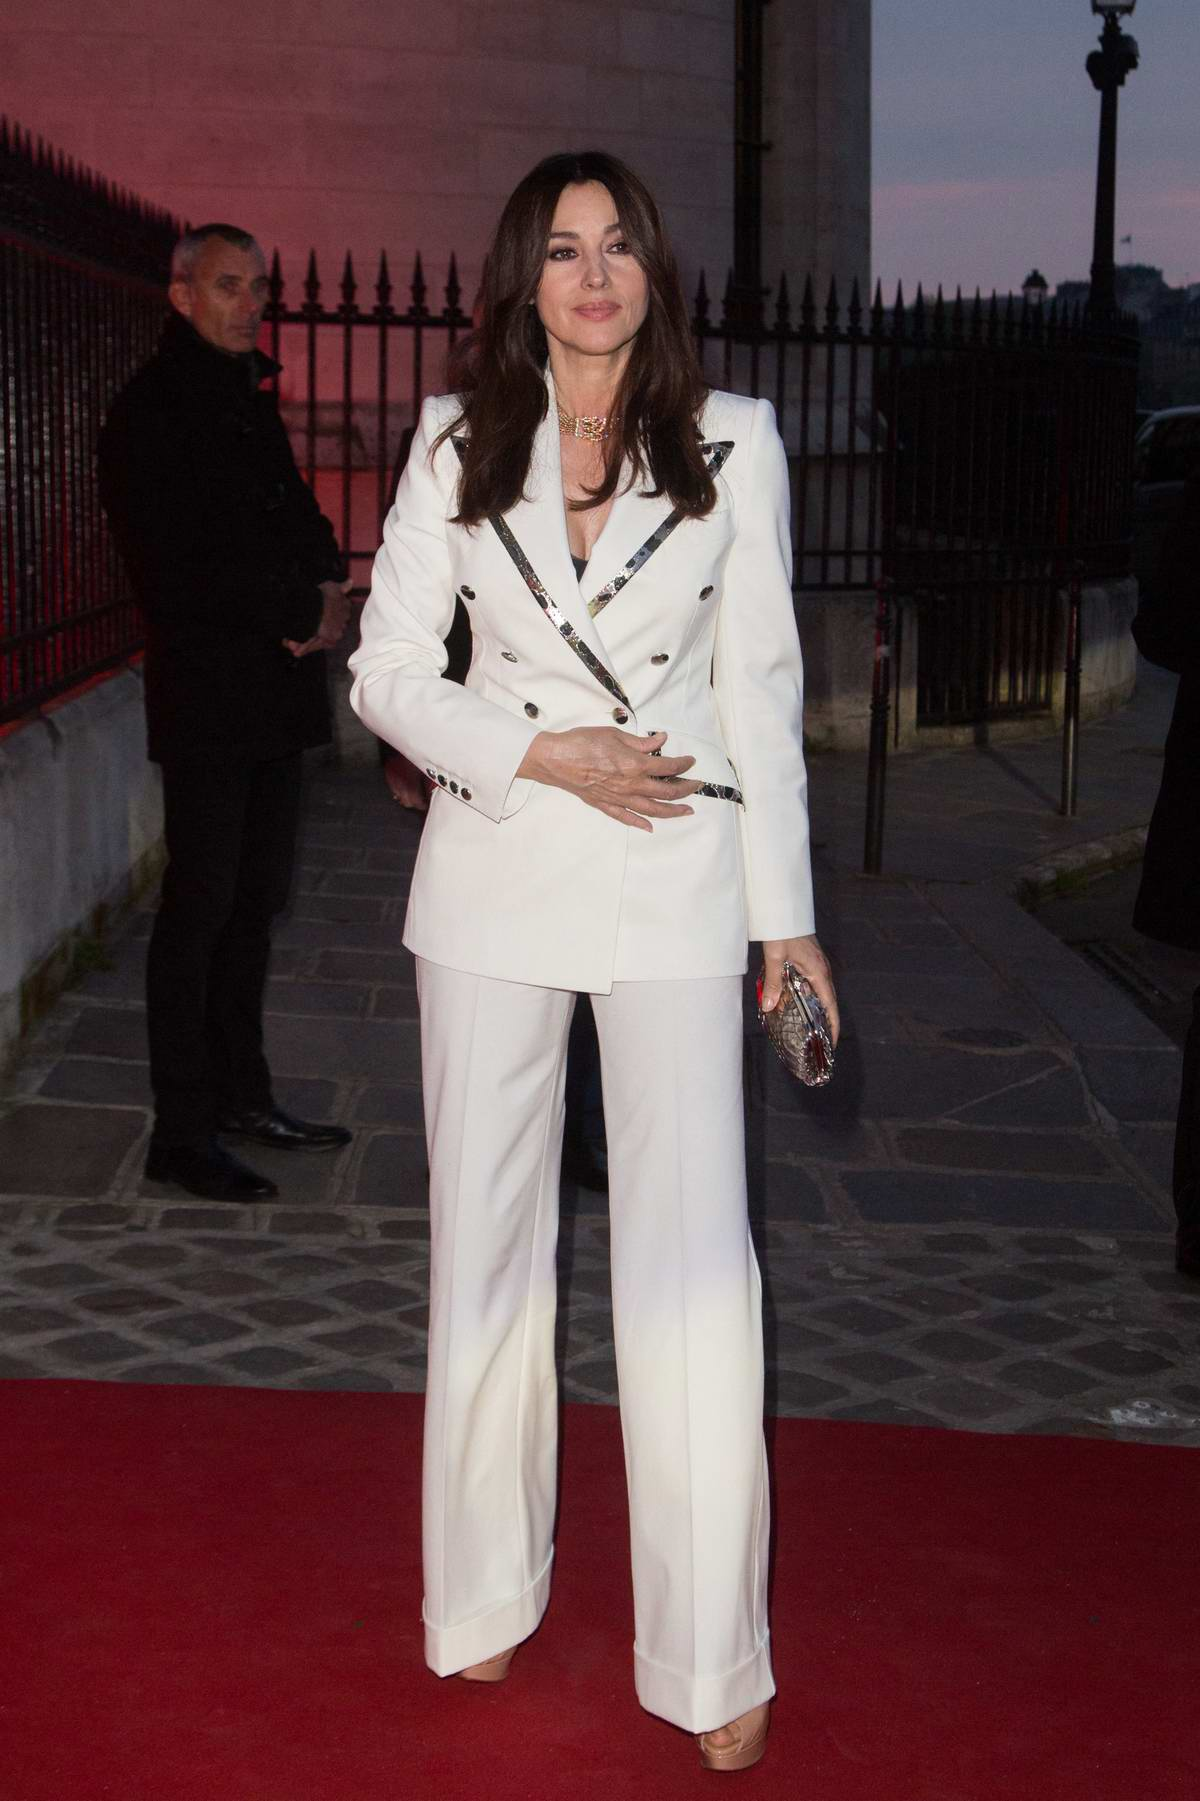 Monica Bellucci attends Clash De Cartier Photocall at La Conciergerie in Paris, France